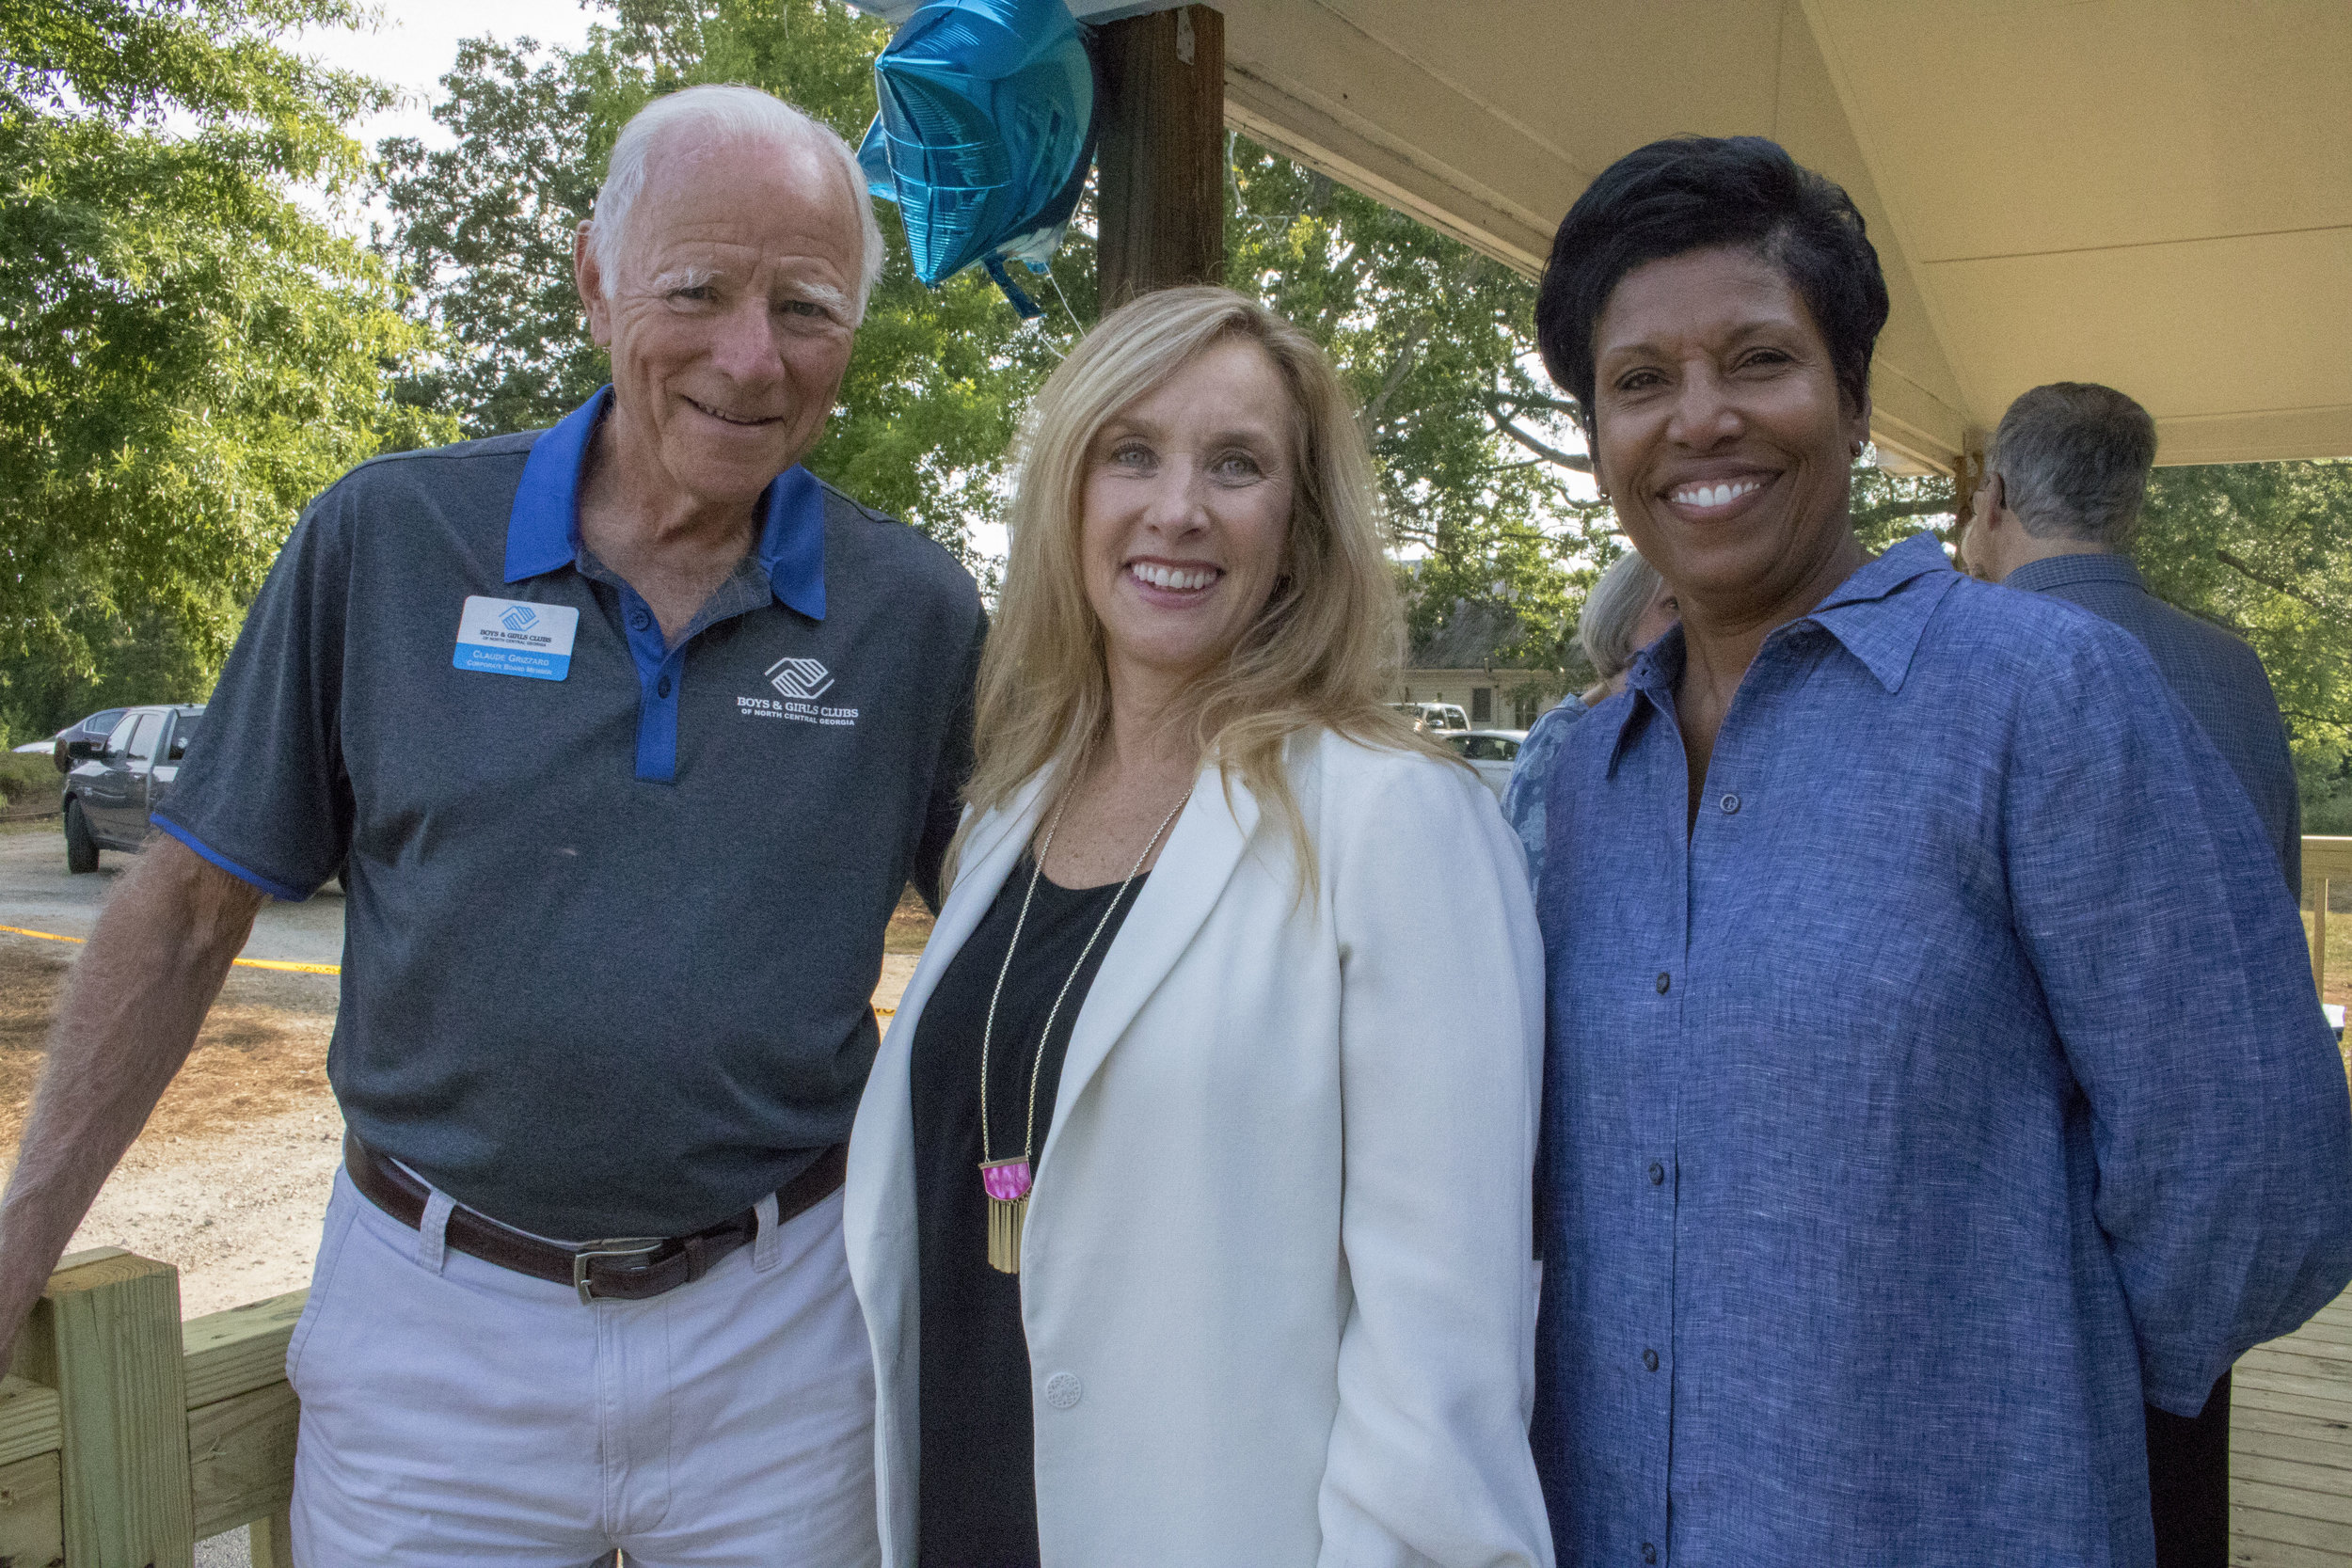 Lisa Hurst, center, Vice President of Organizational Development Southeast Field Operations of Boys & Girls Clubs of America joined us for our celebration!